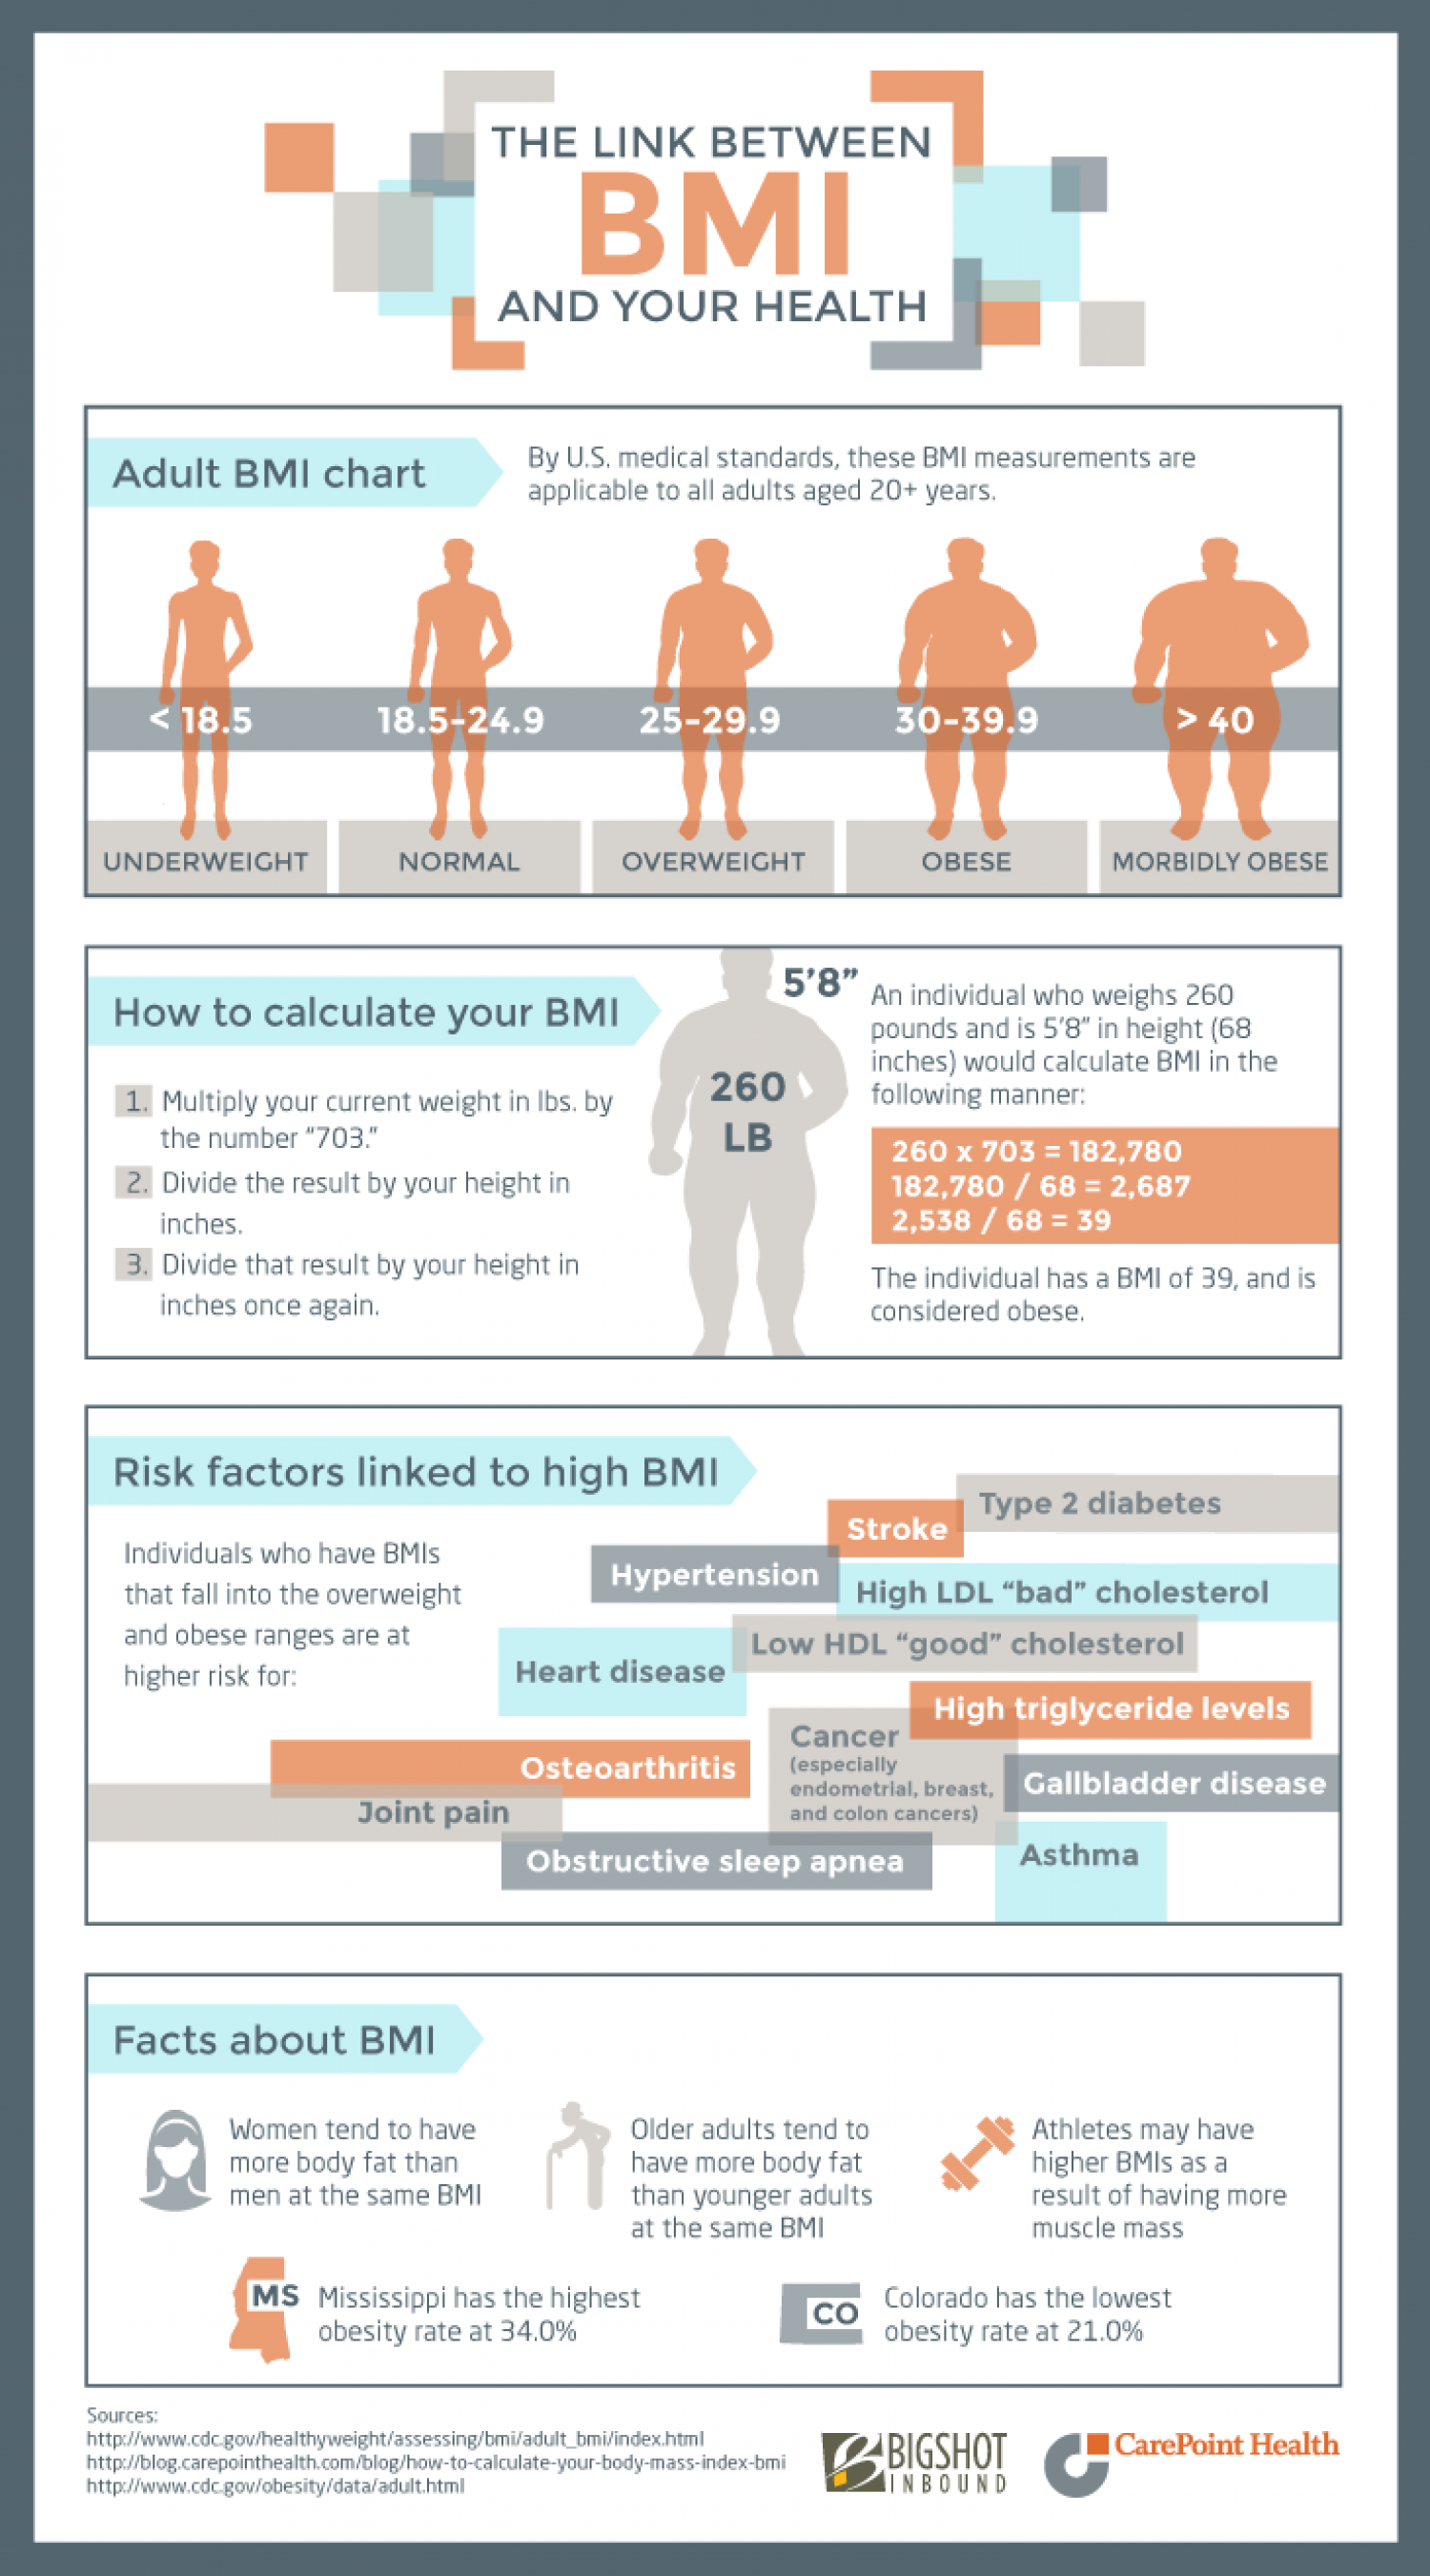 The link between bmi and your health visual the link between bmi and your health infographic nvjuhfo Gallery